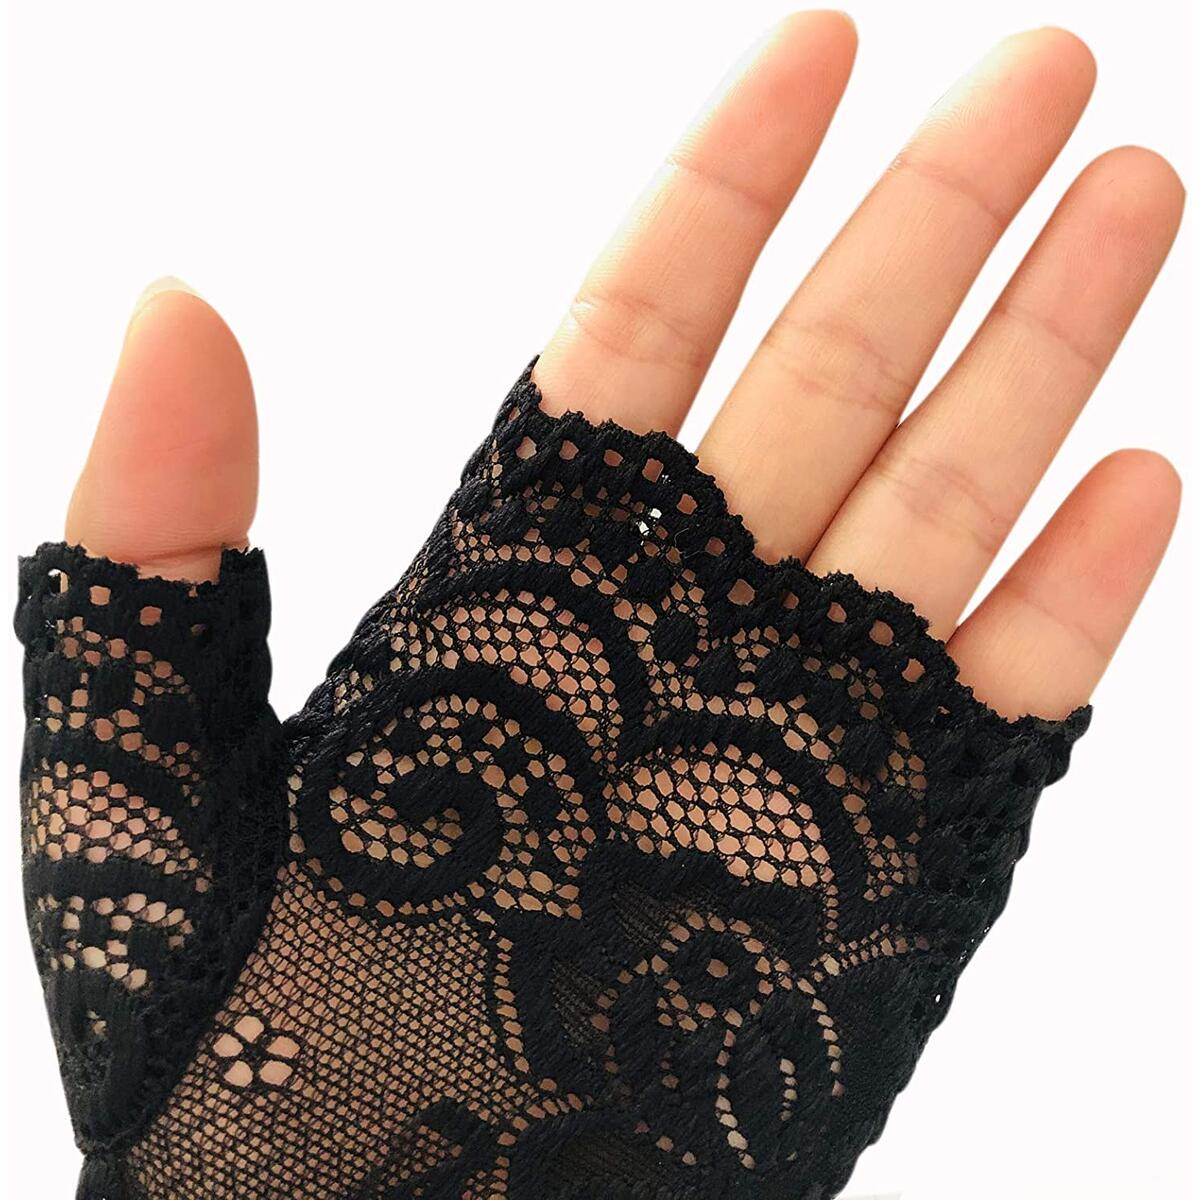 Women Short Lace Gloves Sunblock Fingerless Bridal Wrist Floral Gloves Opera Evening Party Wedding Tea Party Prom Cosplay 1920s Gloves for Ladies and Girls, Black